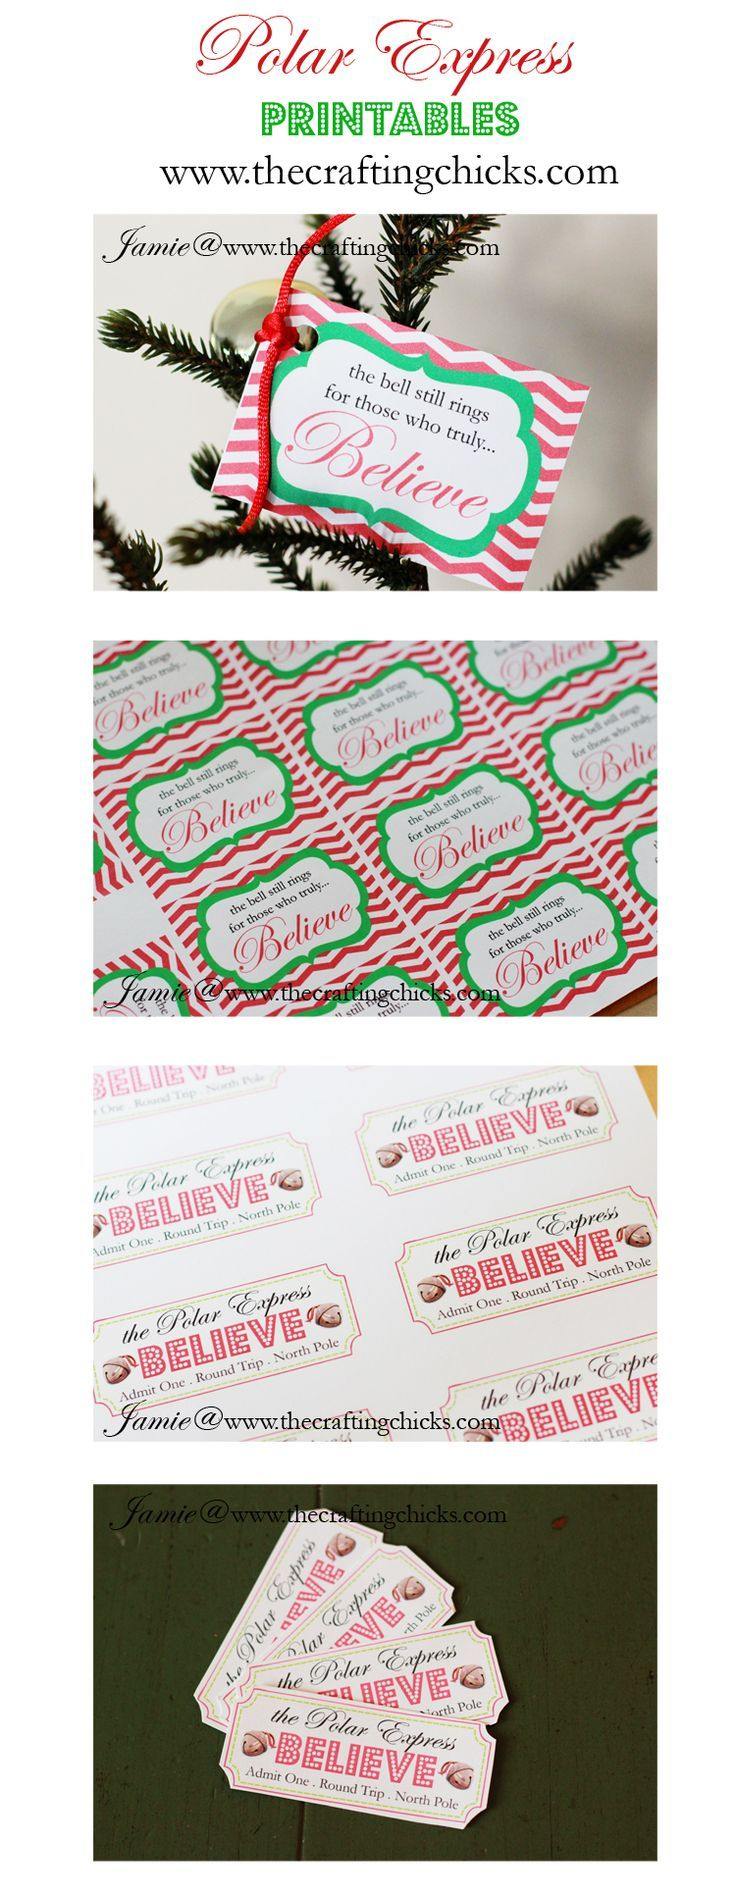 Polar Express Printables Includes A Download With Tickets And Bell